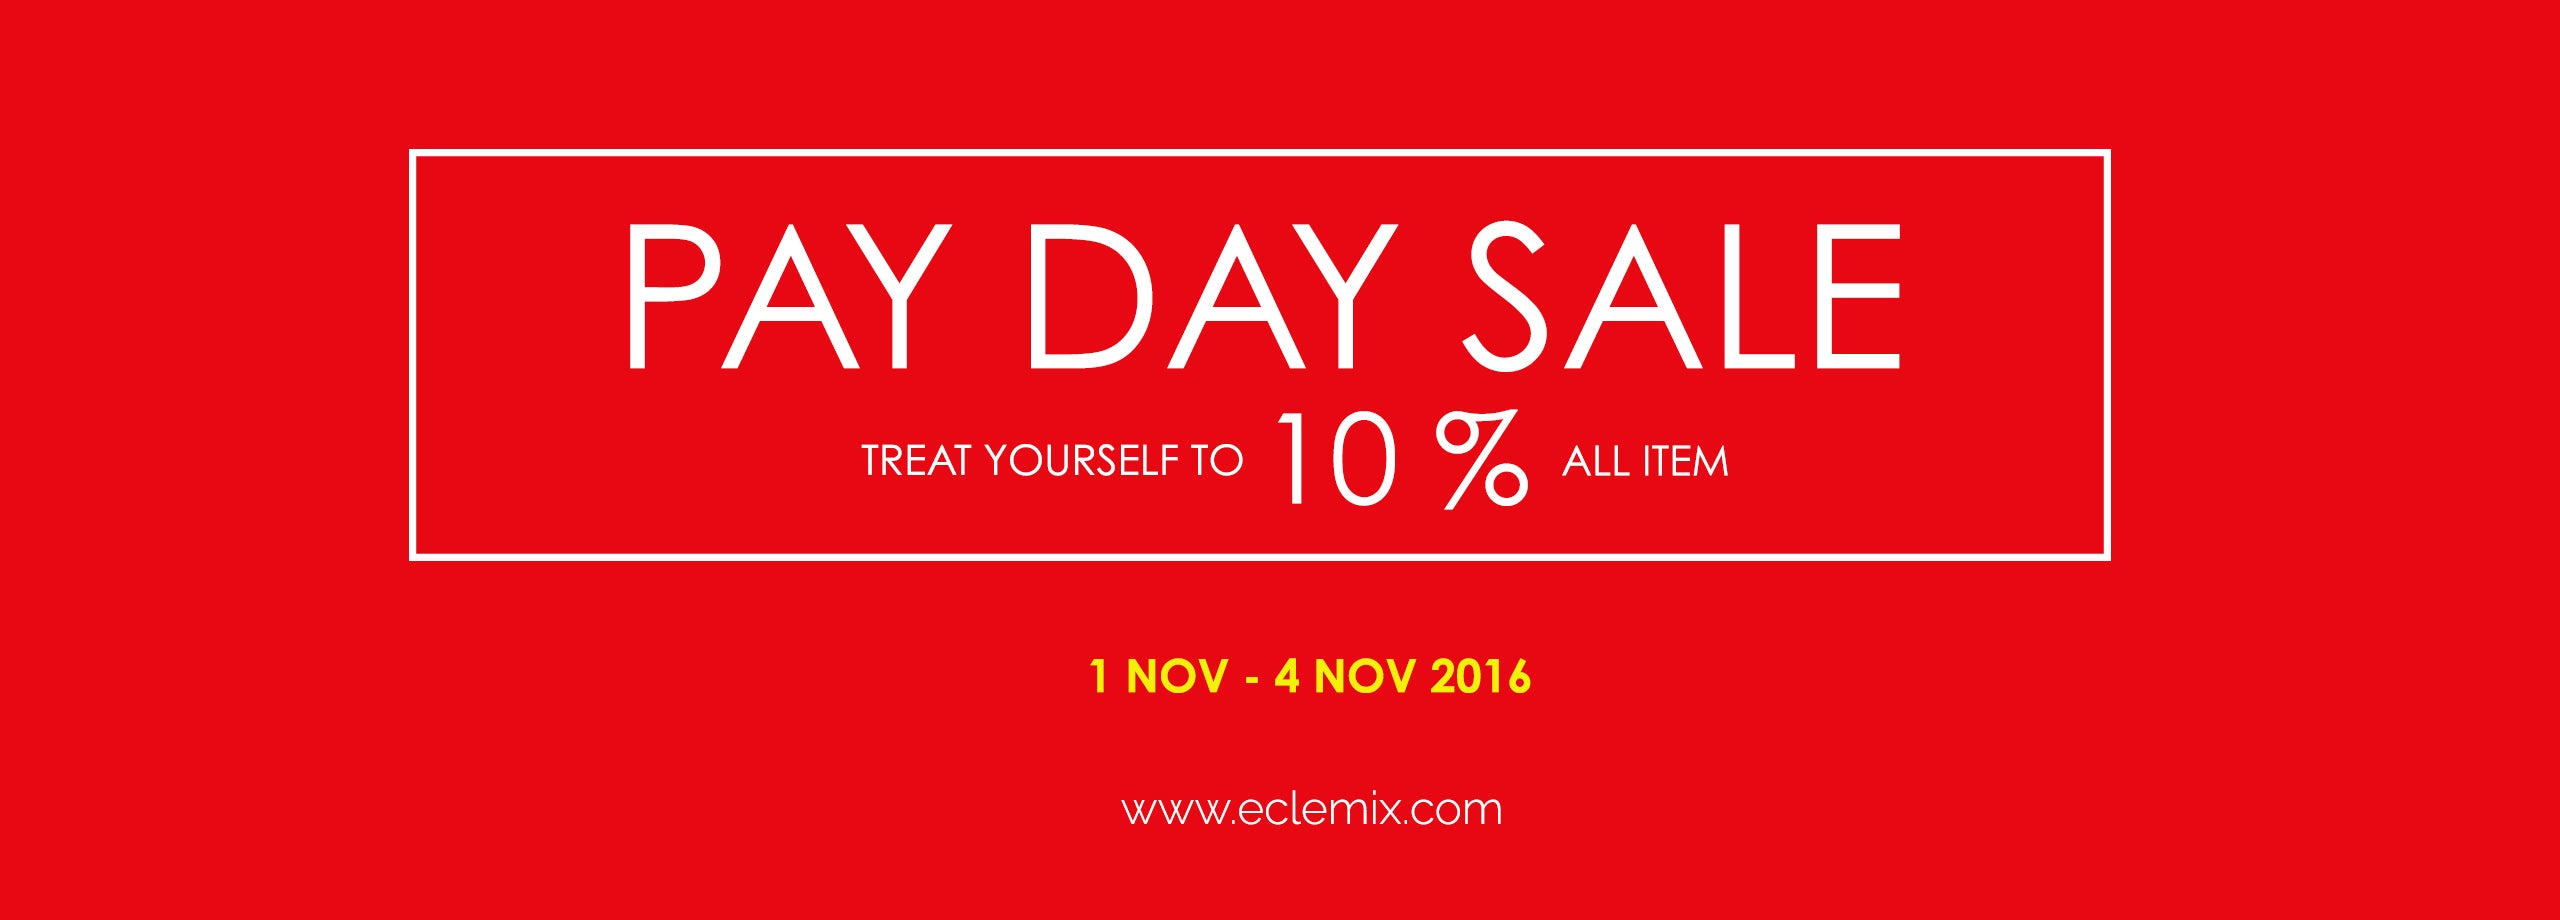 Eclemix Pay Day Sale 10% OFF All Item 1 Nov - 4 Nov 2016